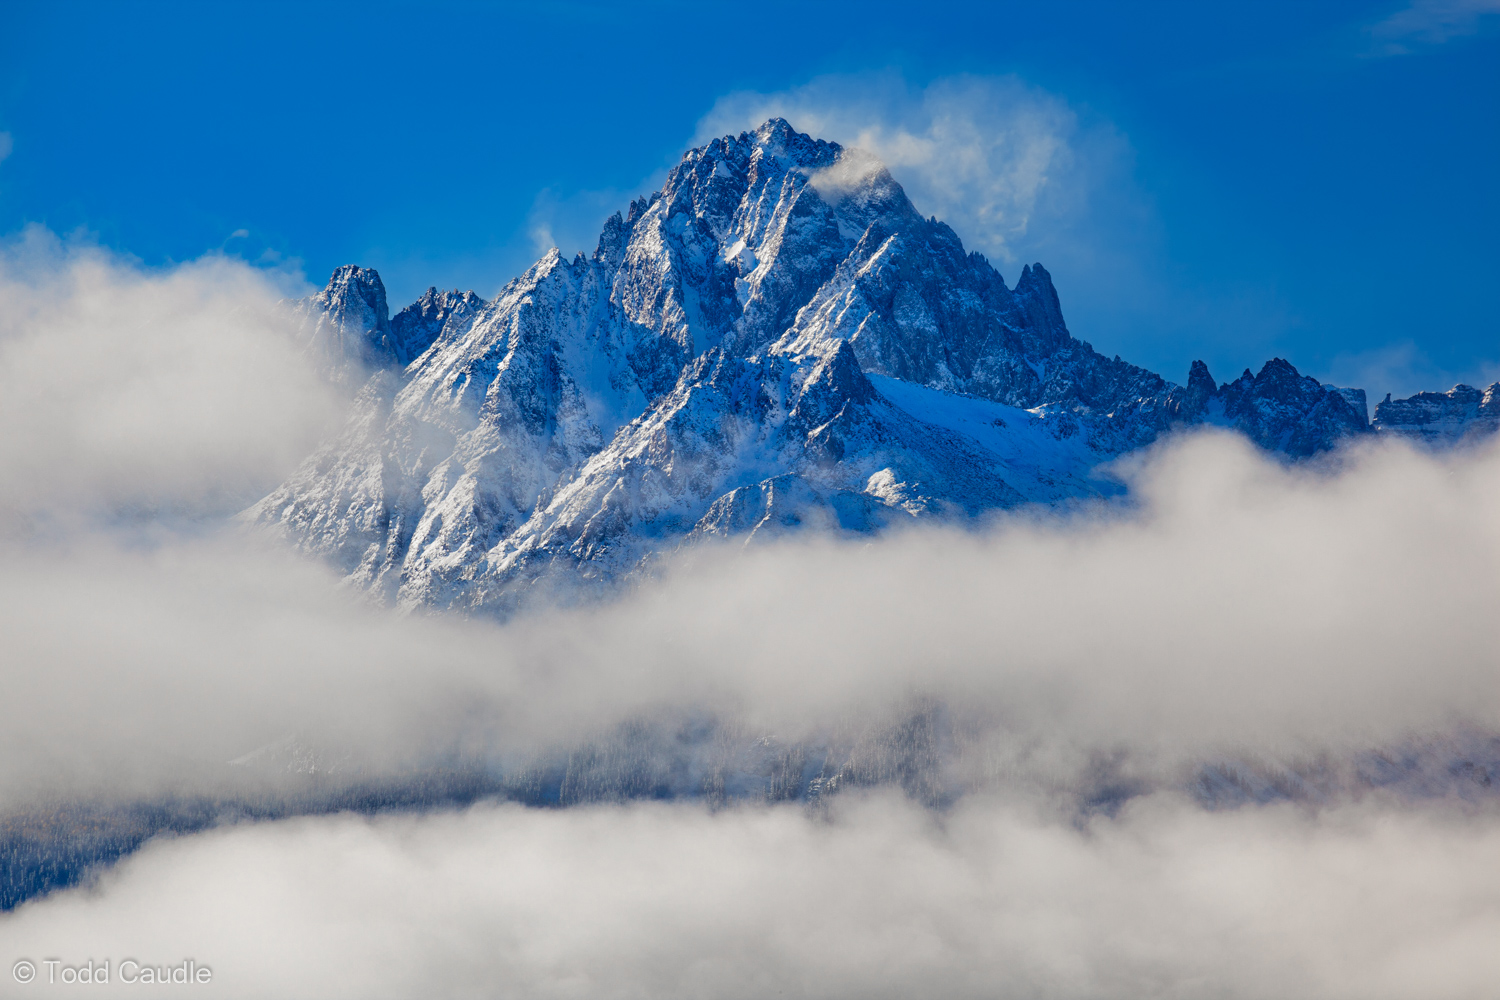 After a night of snow, morning clouds form around the impressive, serrated ridges of Mount Sneffels in the Sneffels Range near...